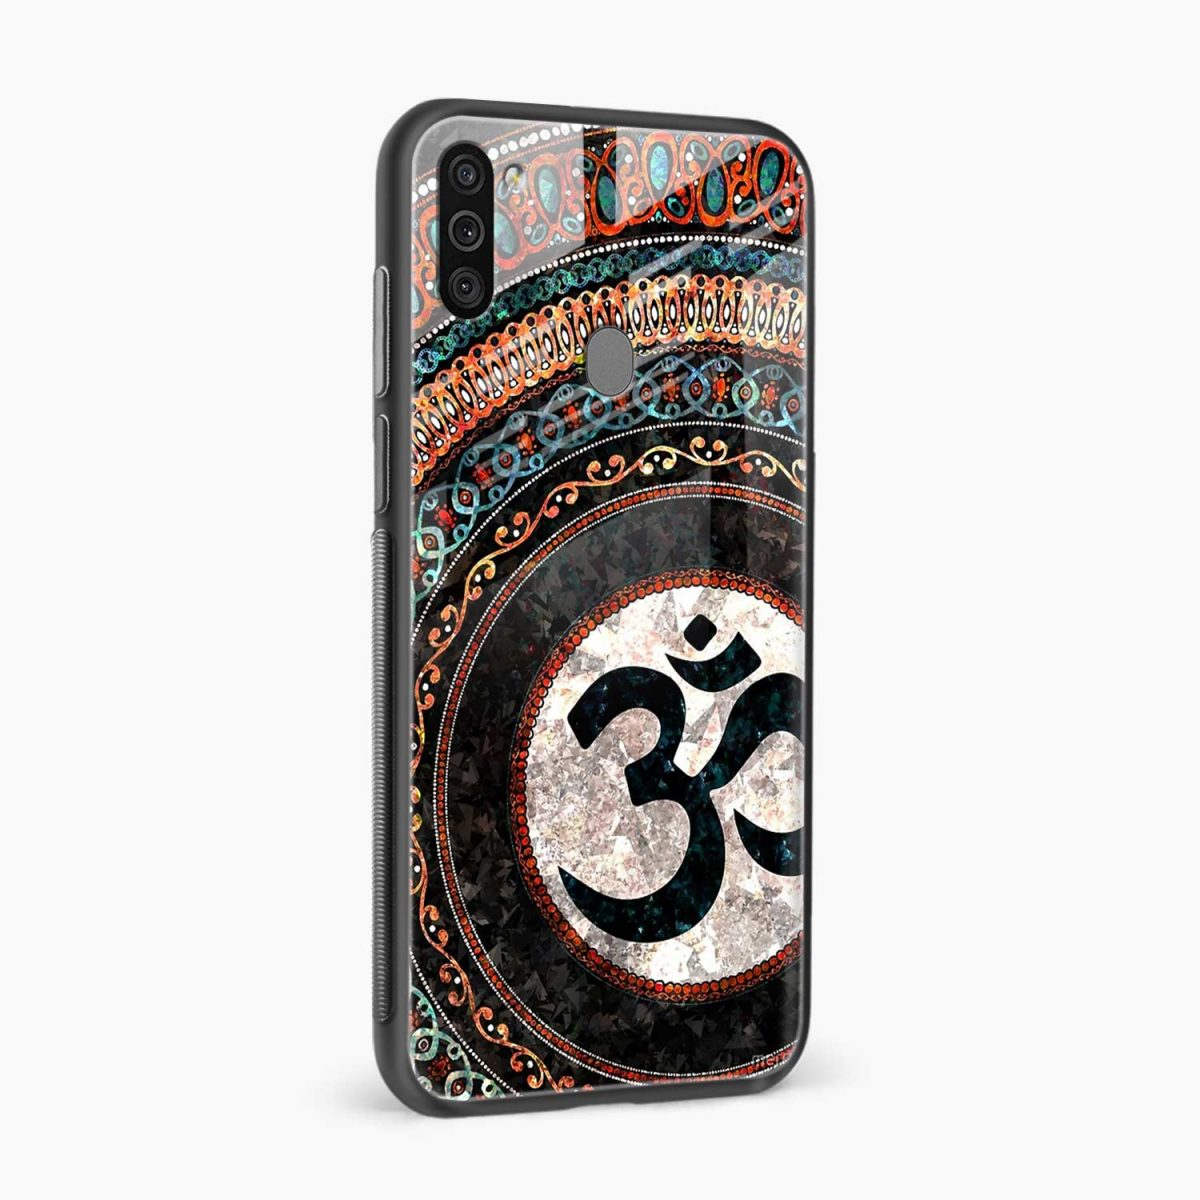 om glass side view samsung galaxy m11 back cover